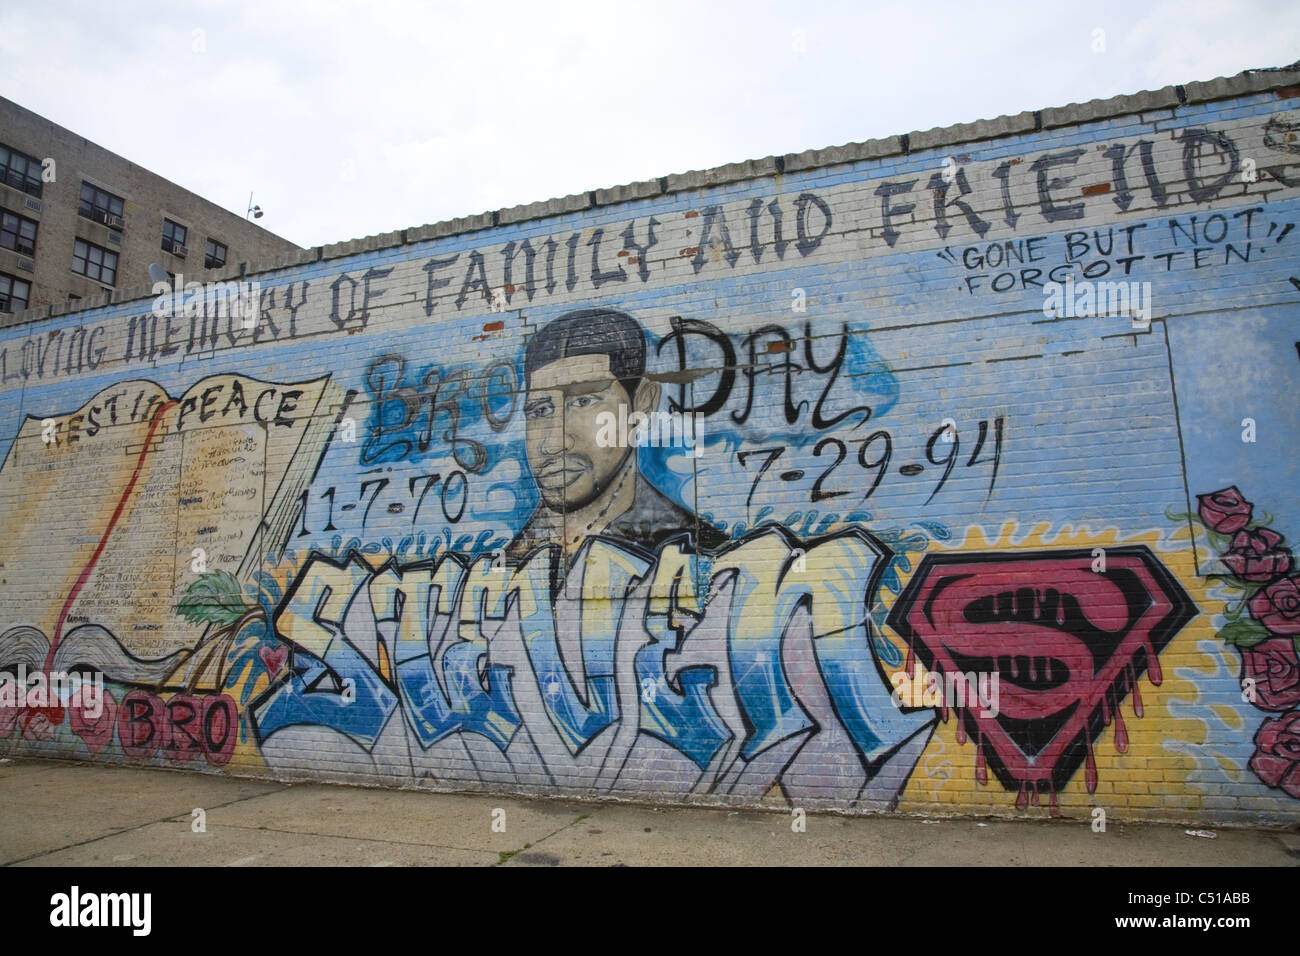 Mural for Steven, a fallen family member, Mermaid Avenue, Coney Island, Brooklyn, New York. - Stock Image